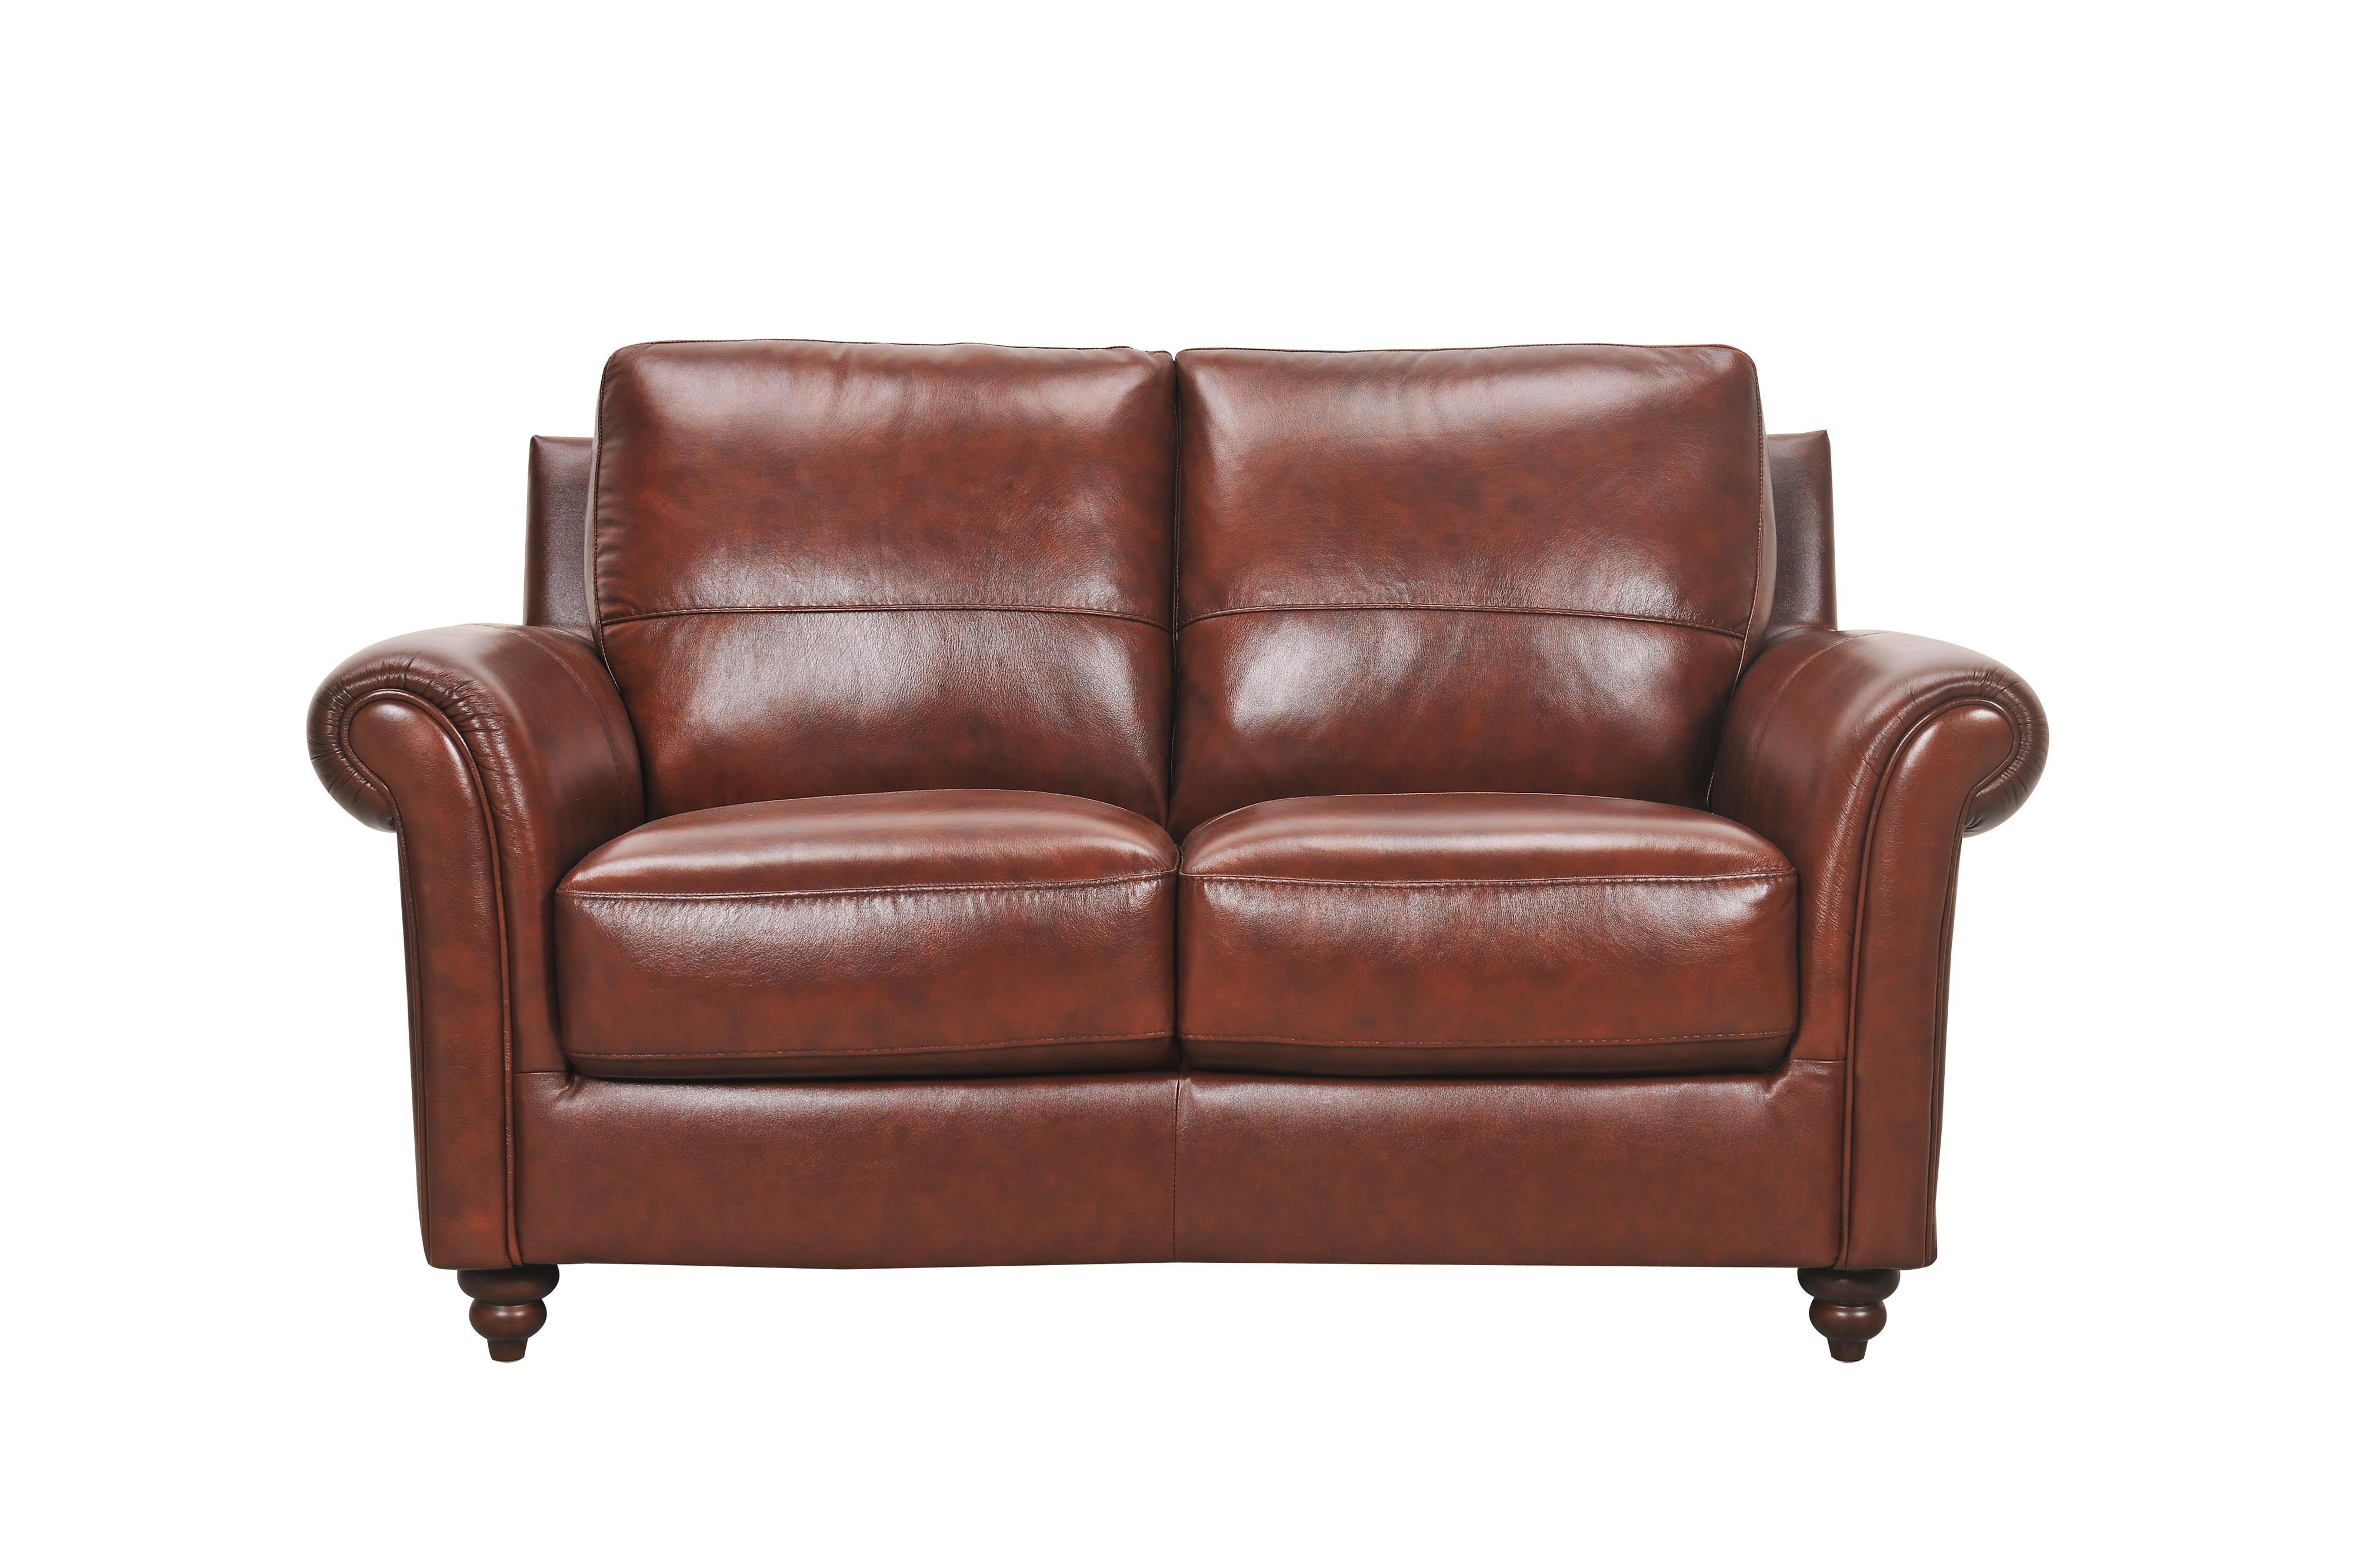 Grady Leather Loveseat with Rolled Arms and Turned by Violino at O'Dunk & O'Bright Furniture